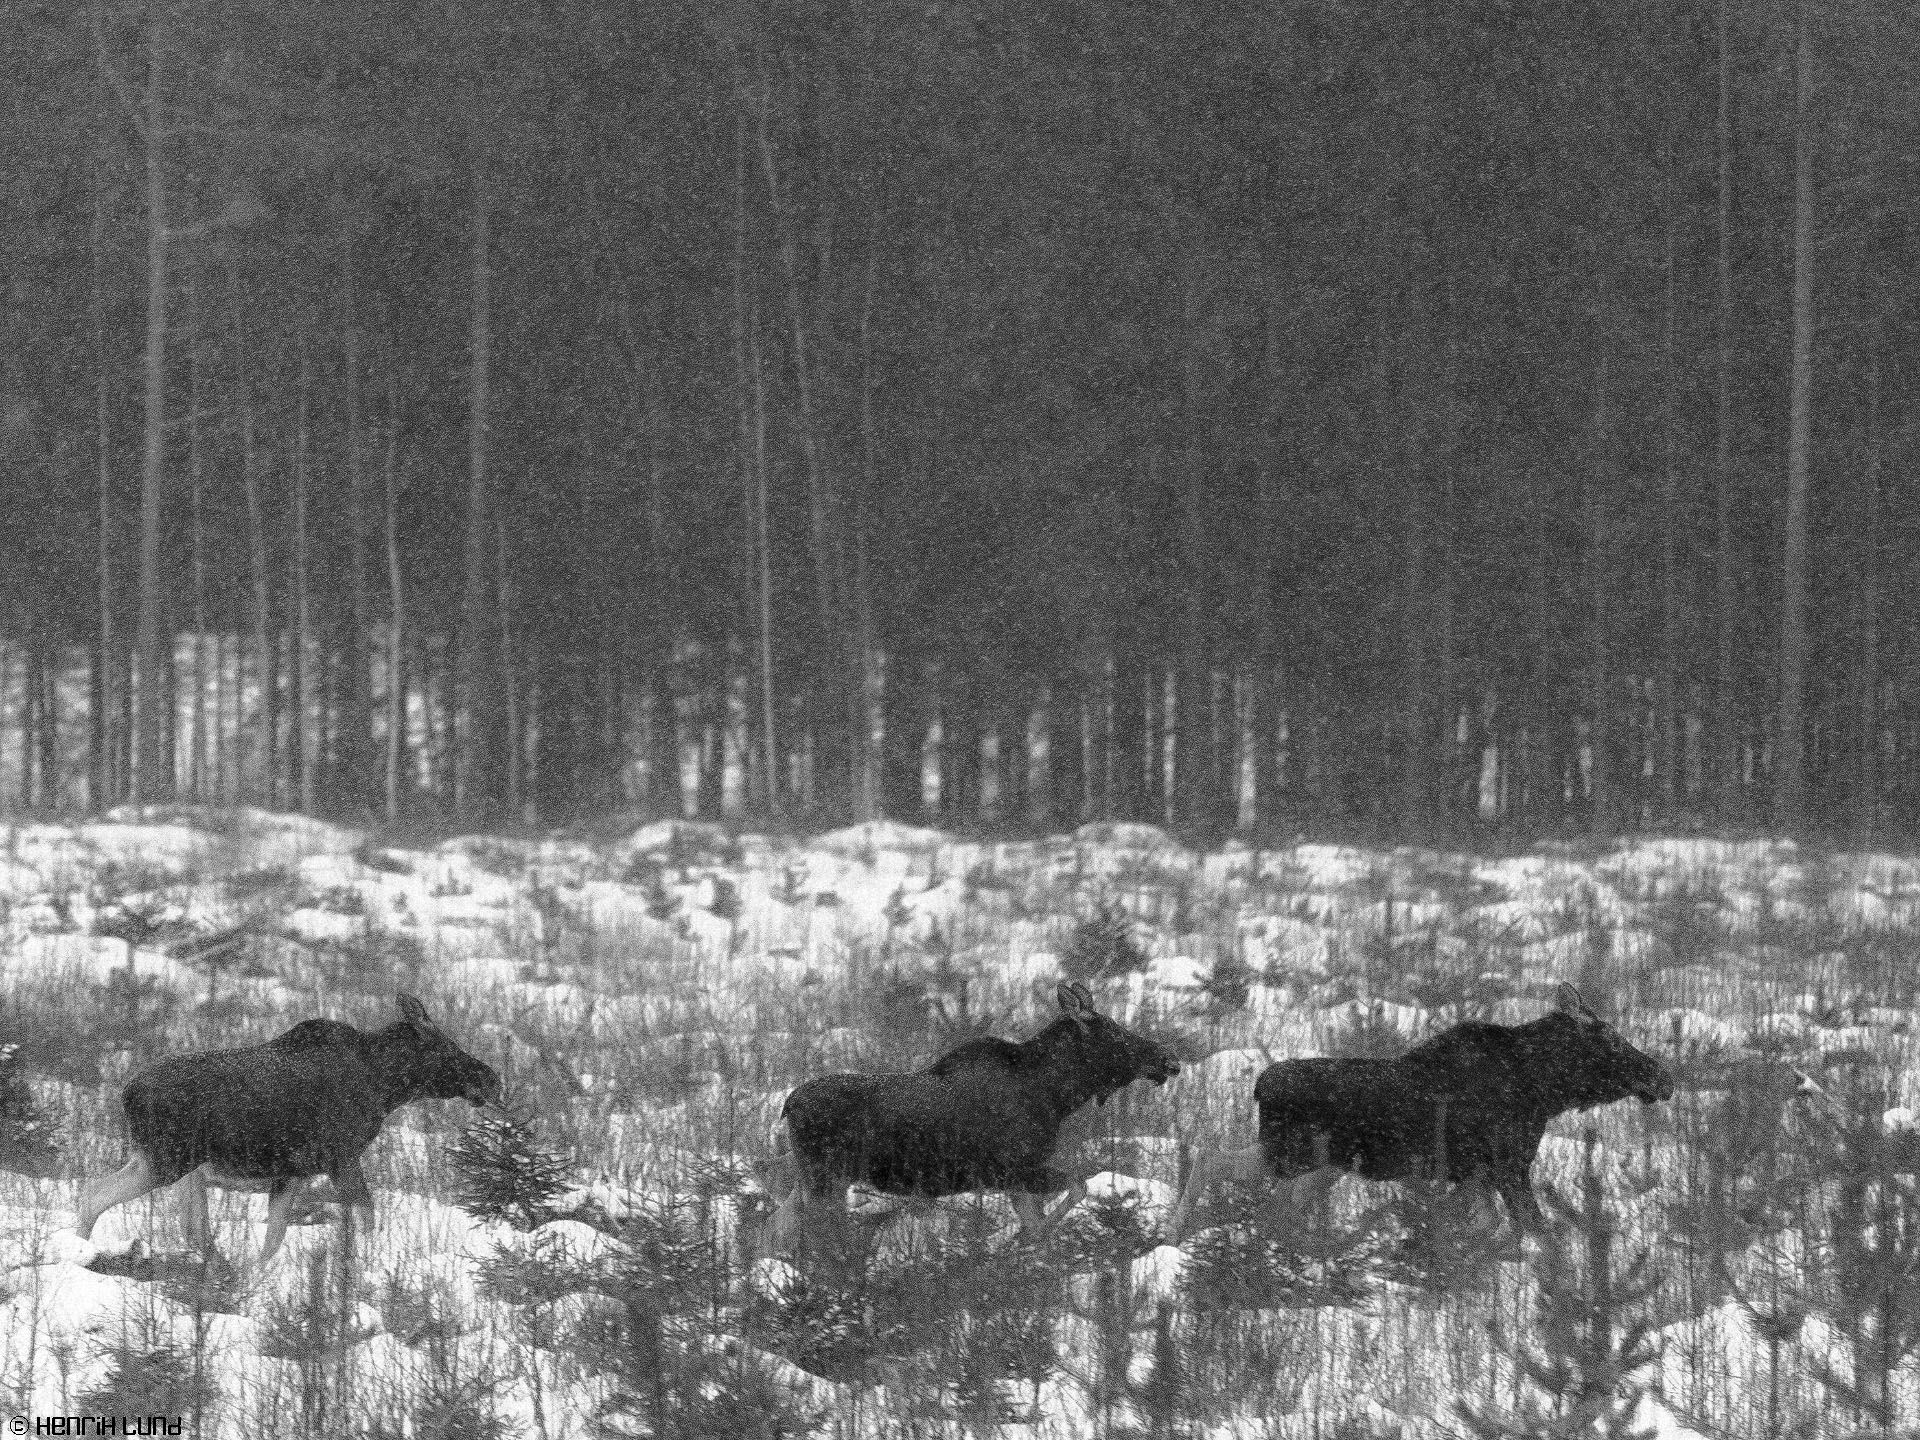 BW-version of three mooses running - more like the painting described in the text. Somerniemi, Finland,January, 2015.